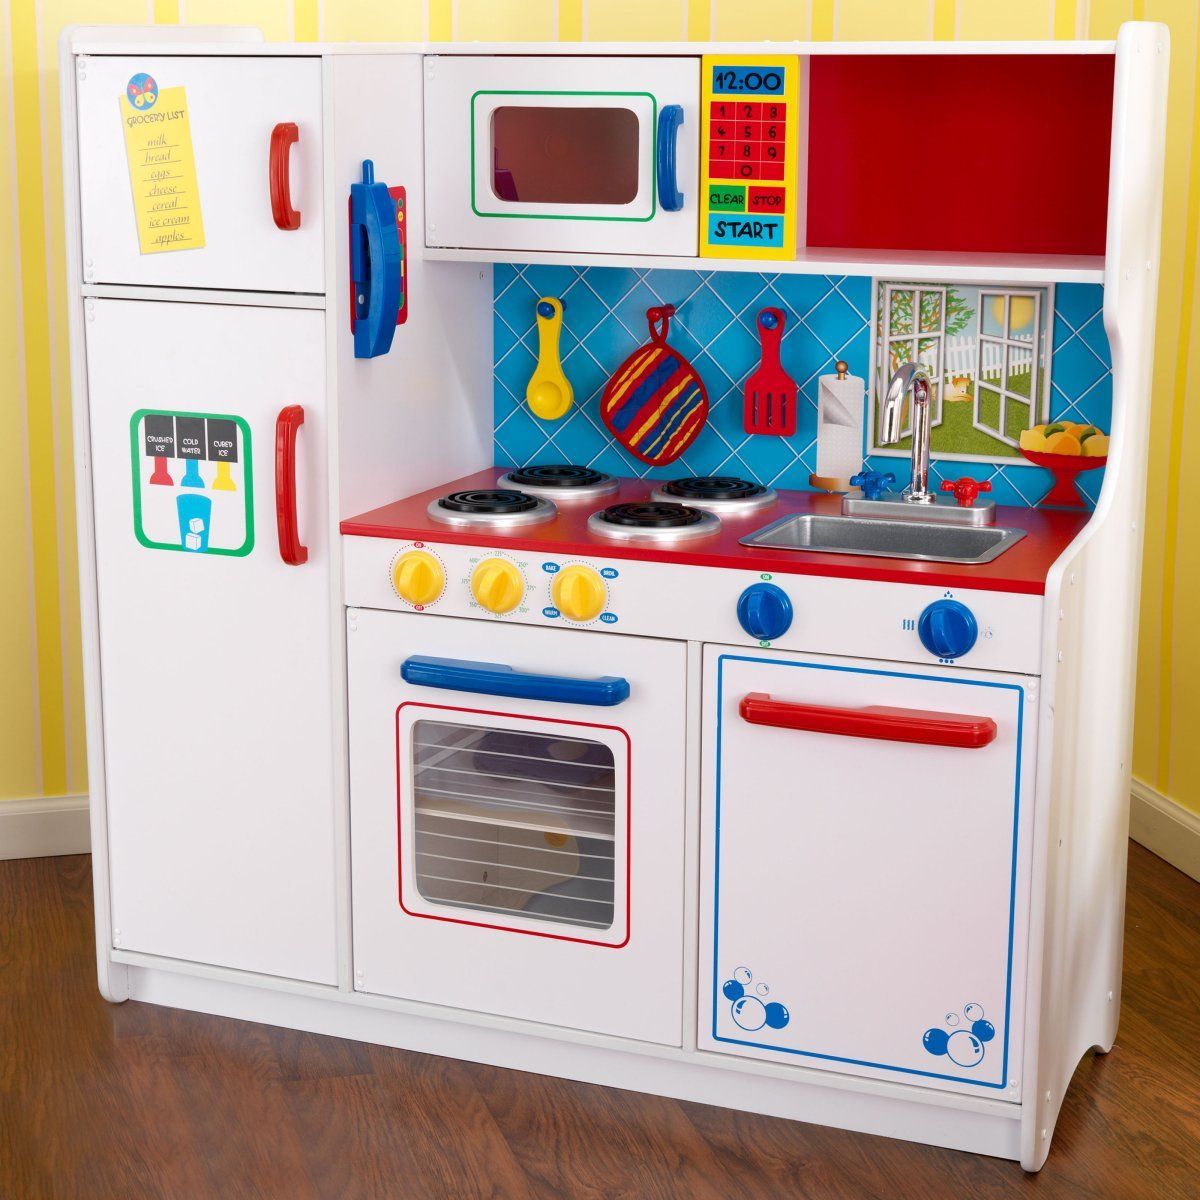 Toy Kitchens For Sale Cheap